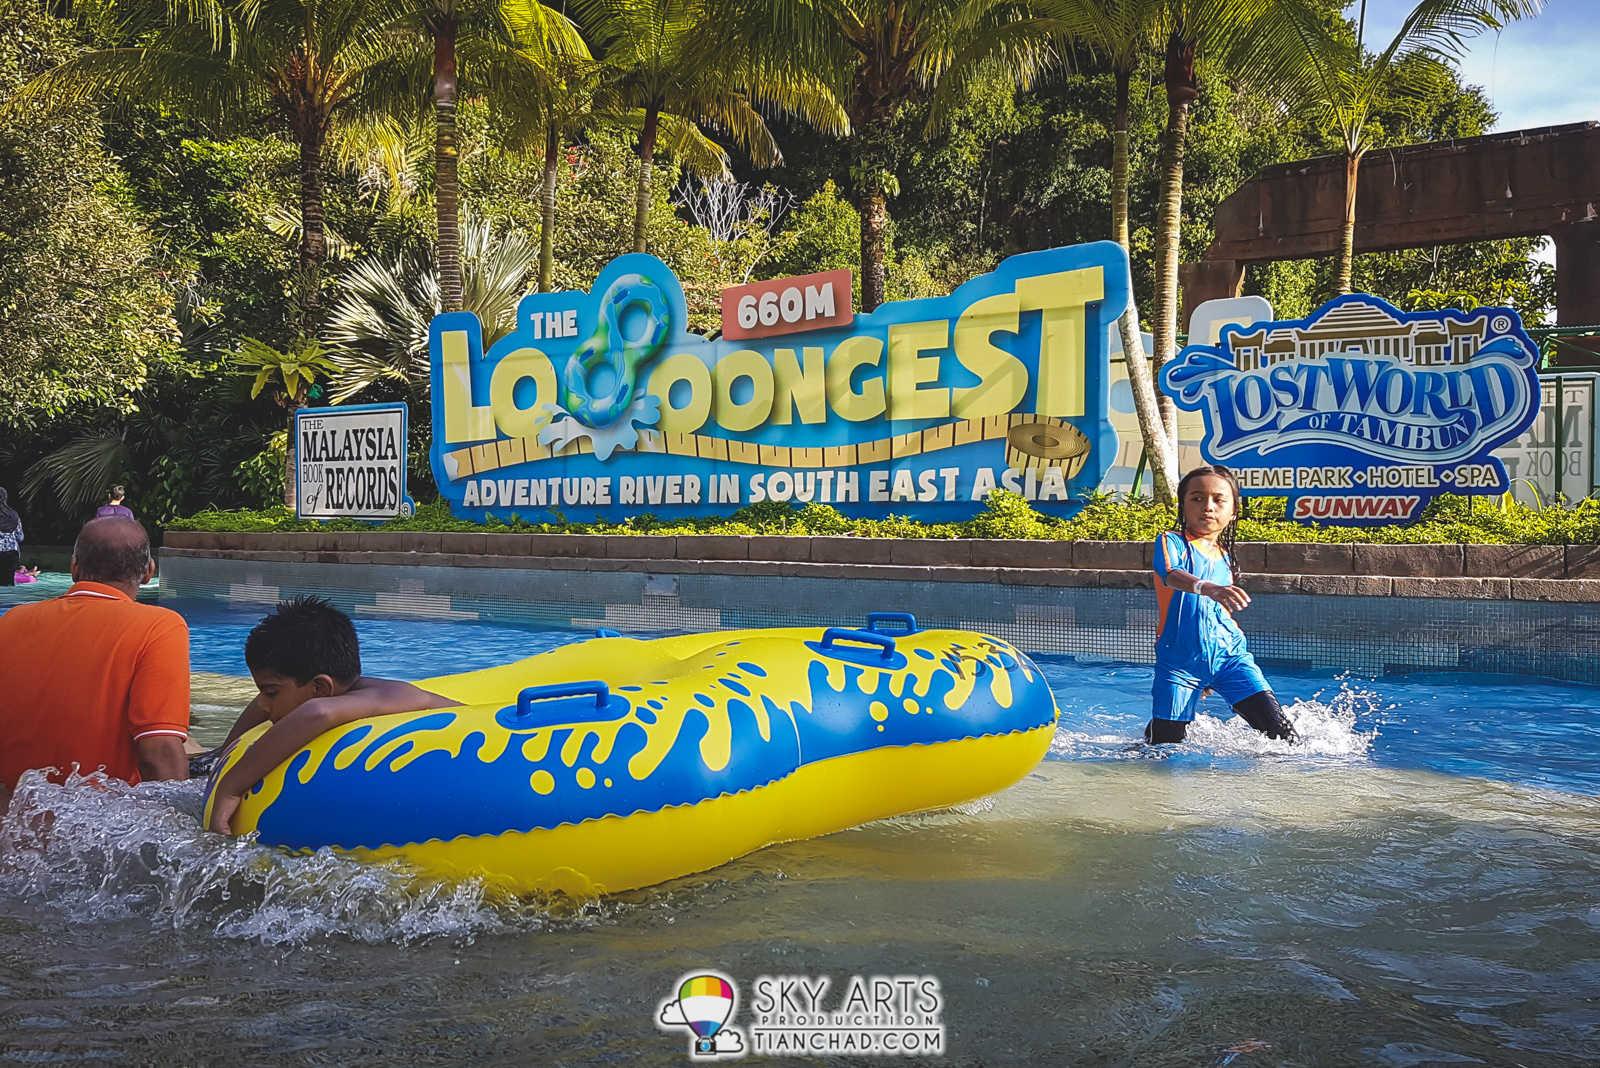 Lost world of tambun must try ride tctravel lost world of tambuns must try the longest adventure river gumiabroncs Image collections